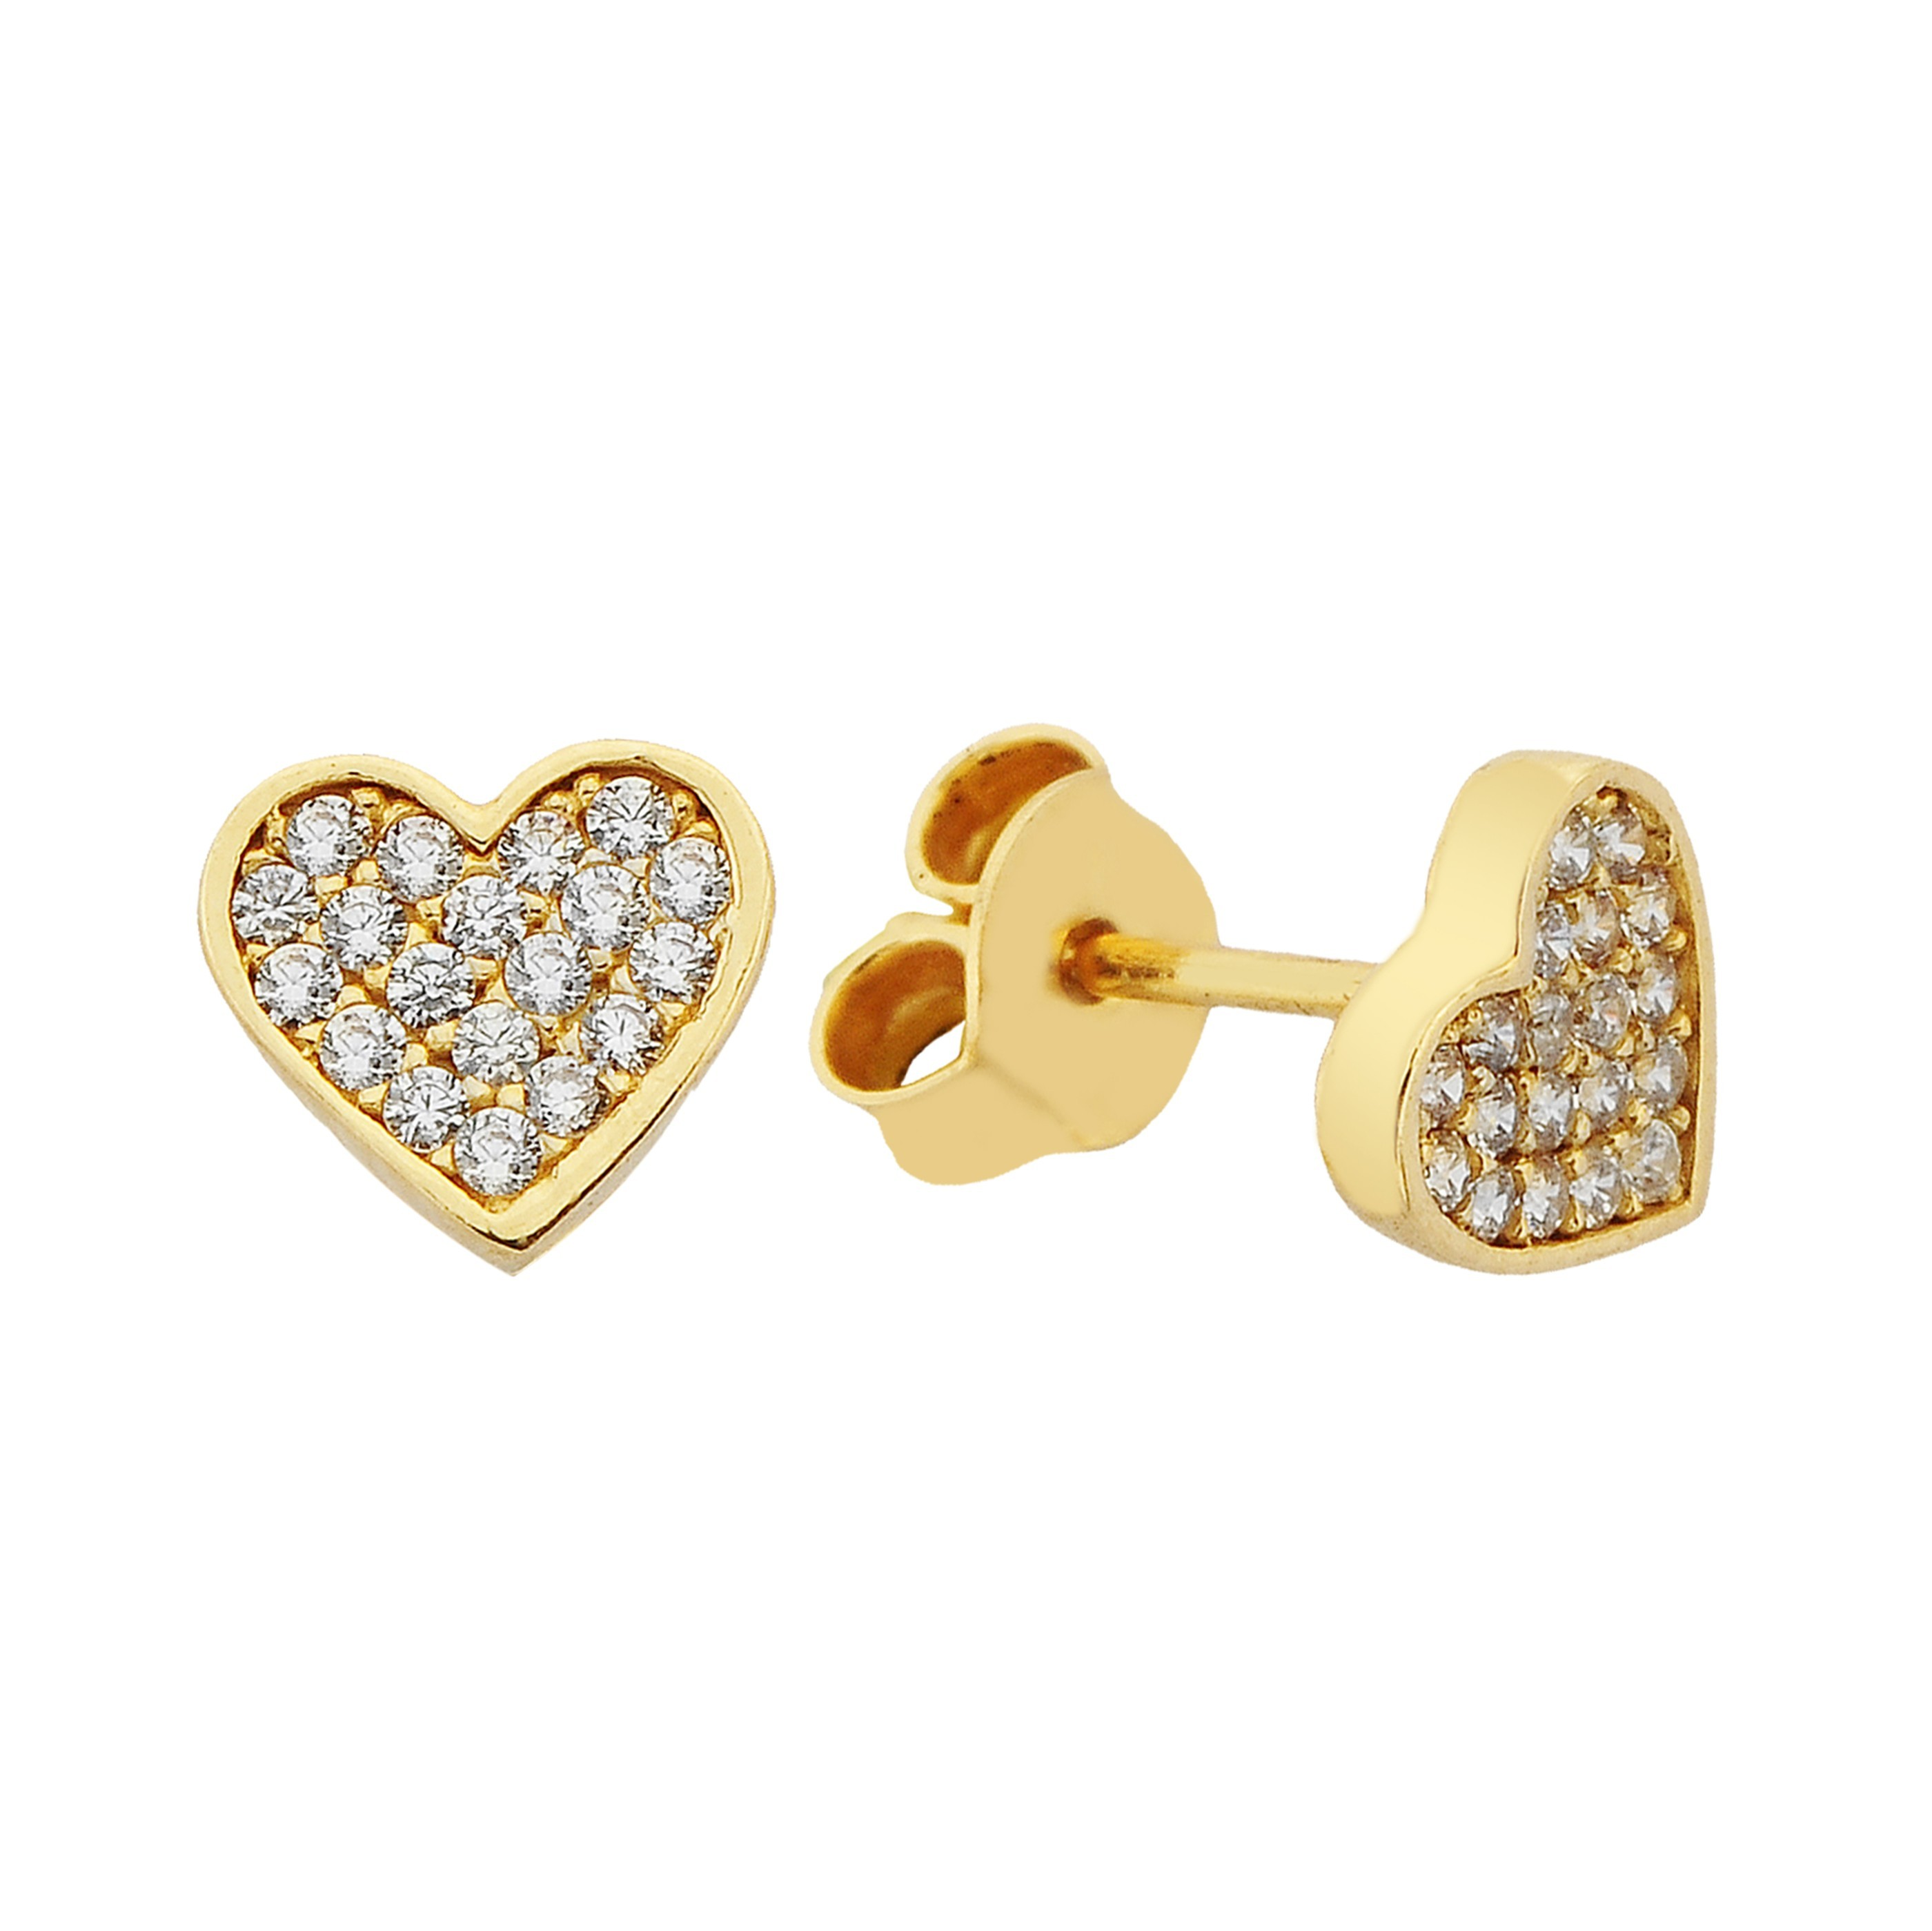 14K Real Solid Gold Heart Stud Earrings Decorated with Zirconia Stones for Women Birthday christmas xmas mother's day gift small tiny minimalist handmade jewelry